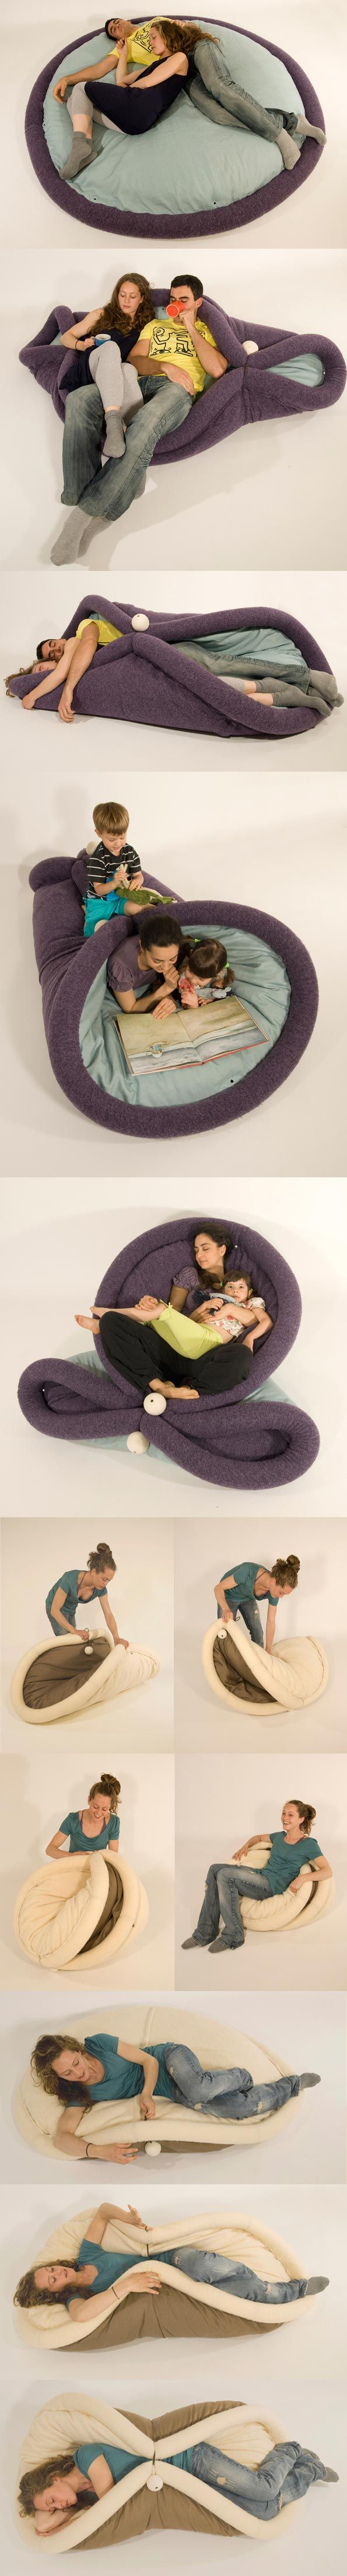 Blandito :::: It's a bed! It's a chair! No… it's Blandito, a convertible pad for lazy living! More versatile than a sofa bed, Blandito is a large pillow that can be wrapped, folded, and twisted into various recliners of your choice.